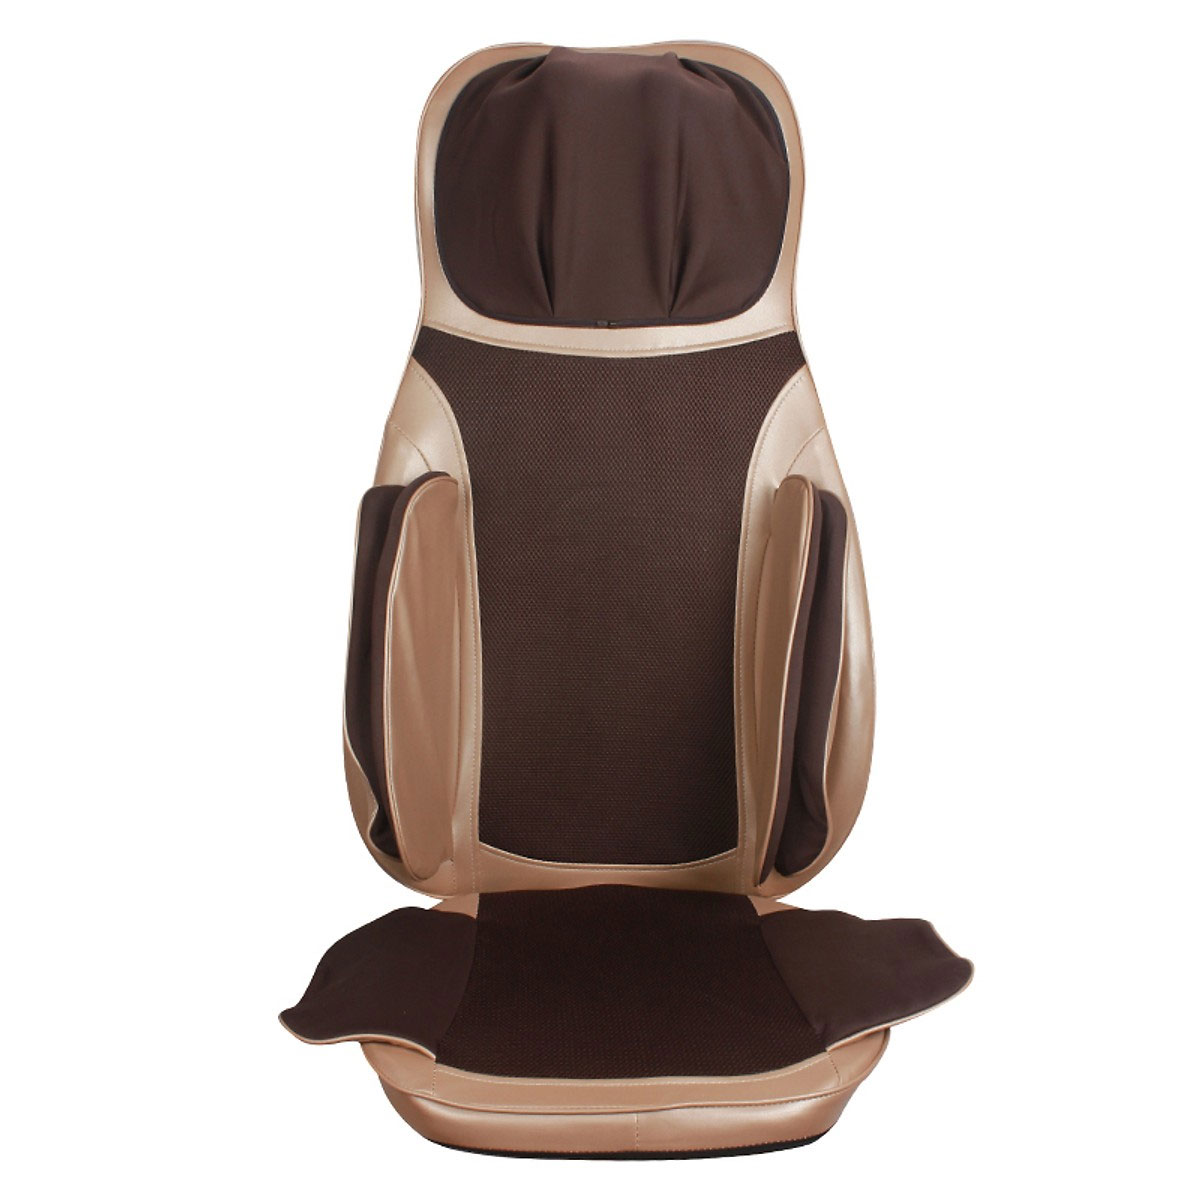 Đệm ghế massage Fuji Luxury MK115